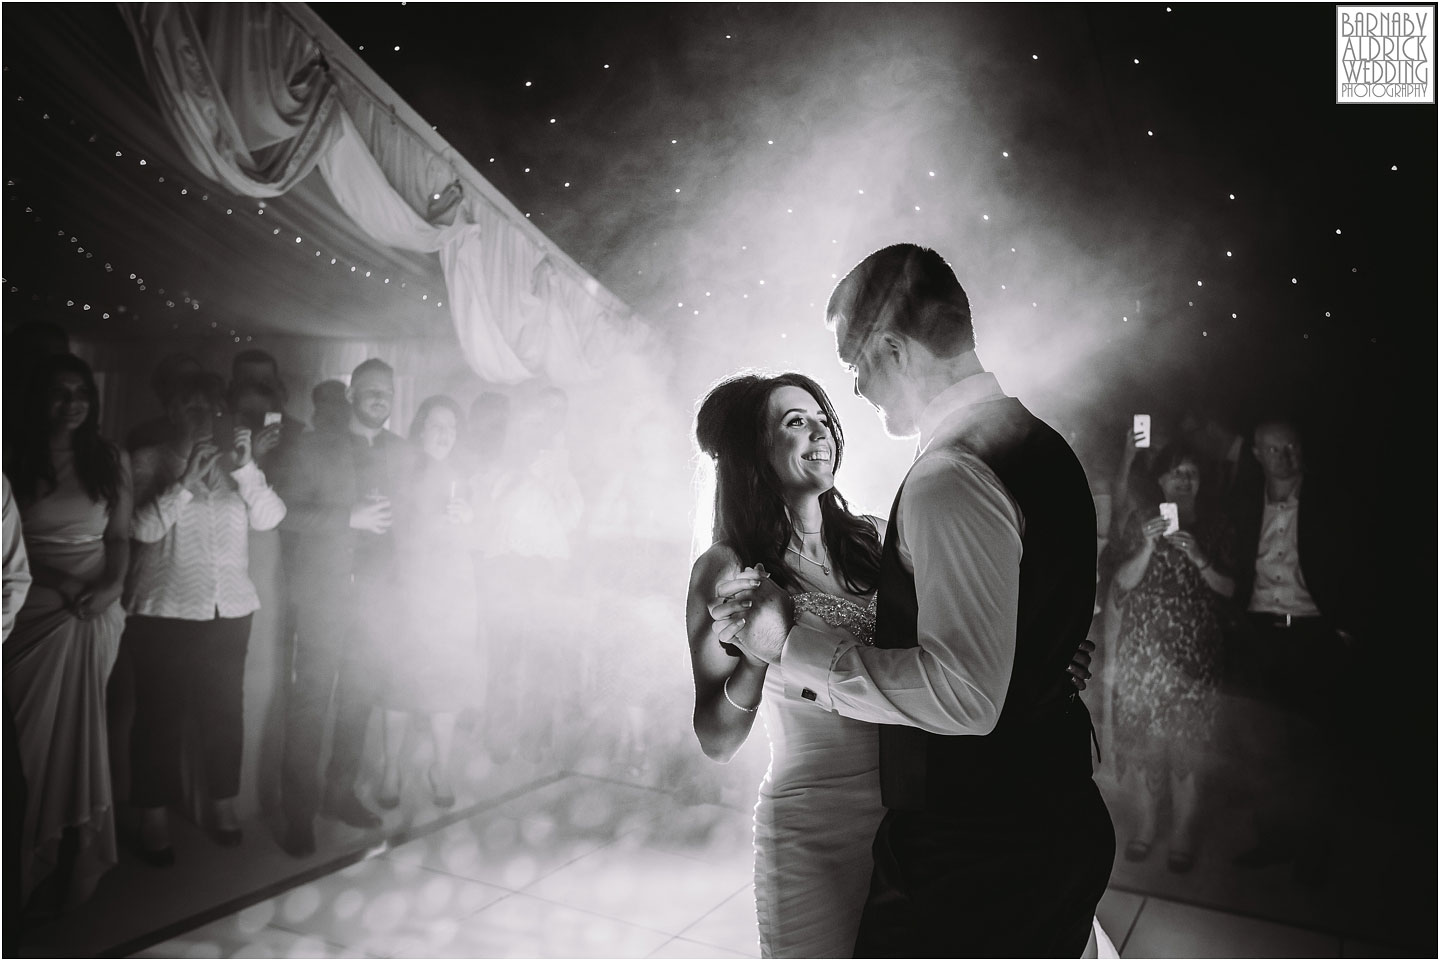 A wedding photograph of a first dance at Priory Cottages wedding venue near Tadcaster and Wetherby in Yorkshire